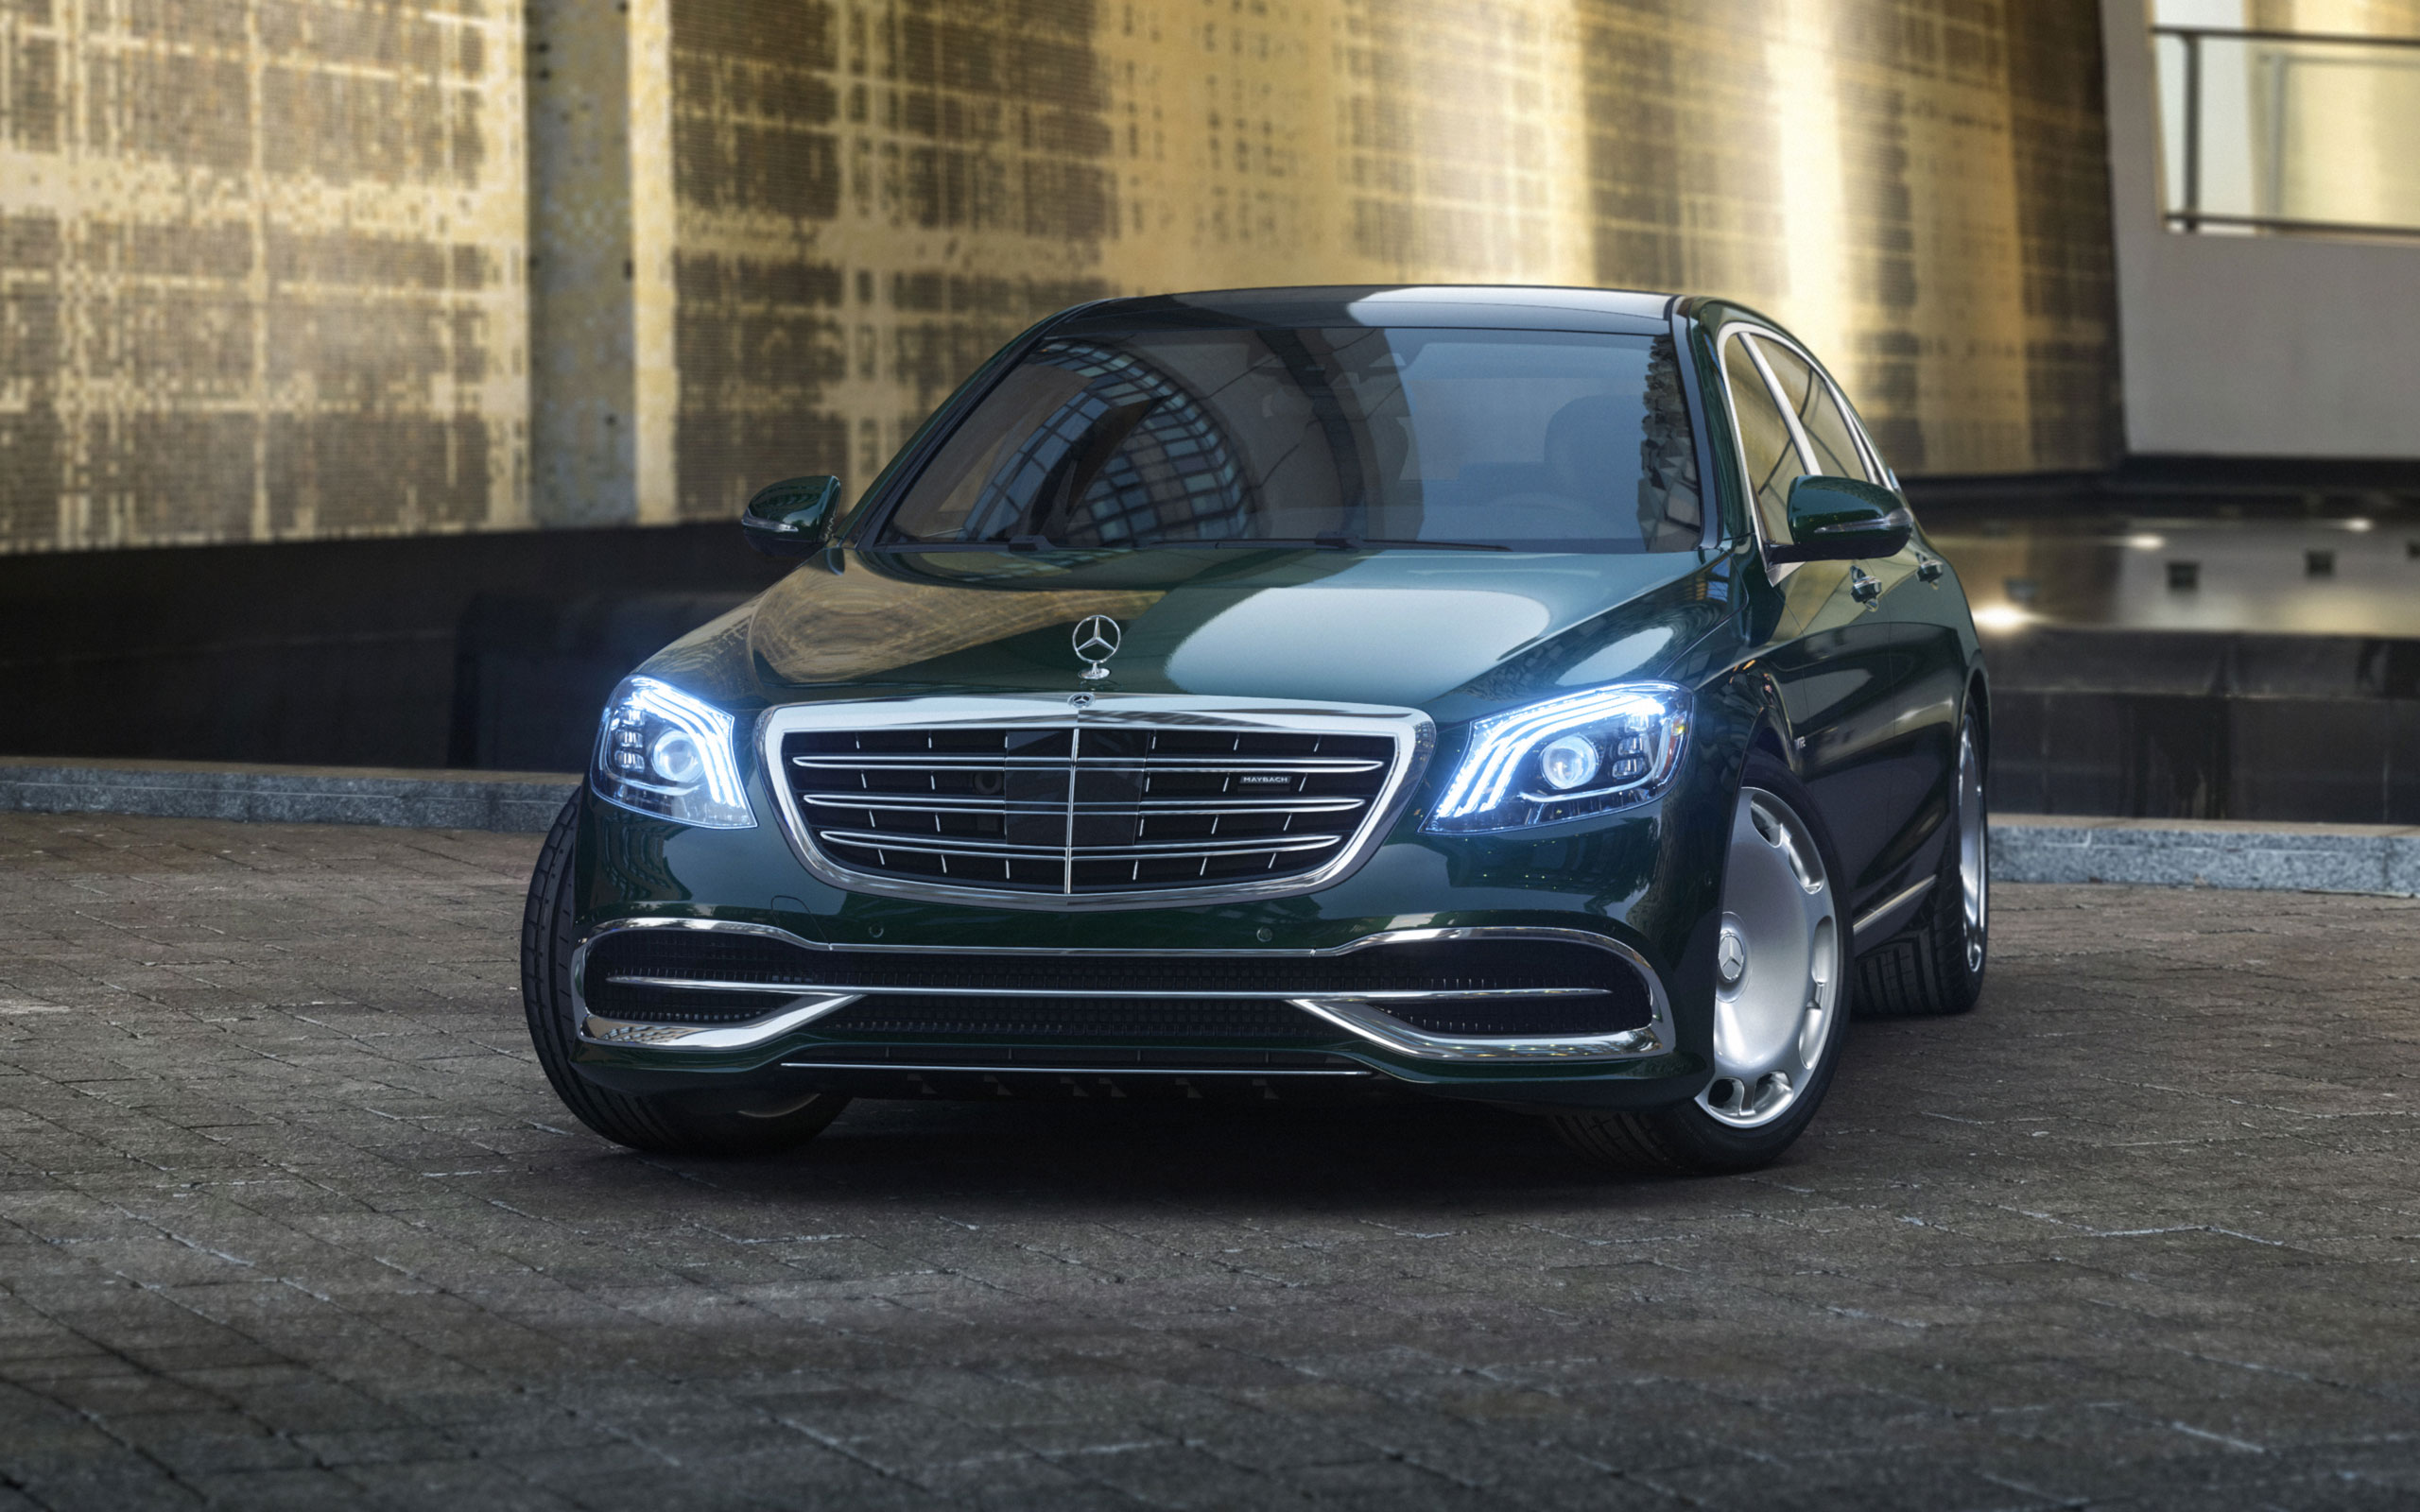 https://assets.mbusa.com/vcm/MB/DigitalAssets/Vehicles/ClassLanding/2018/S/Maybach/BASE/GALLERY/2018-MAYBACH-GALLERY-001-SET-A-WP.jpg